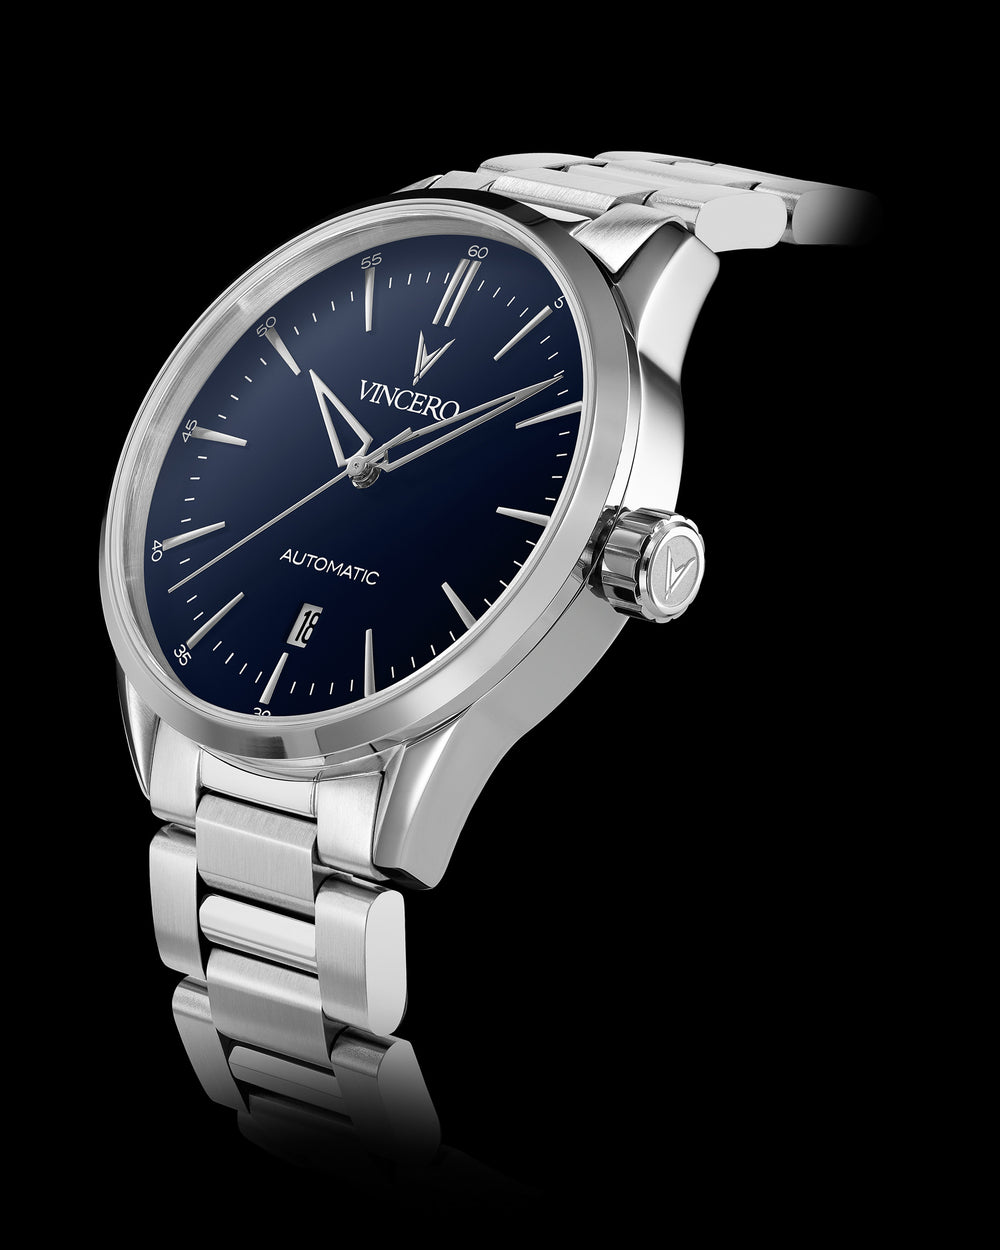 Icon Automatic Silver 316L Stainless Steel Strap Blue Watch Face Silver Case Clasp Silver Accents